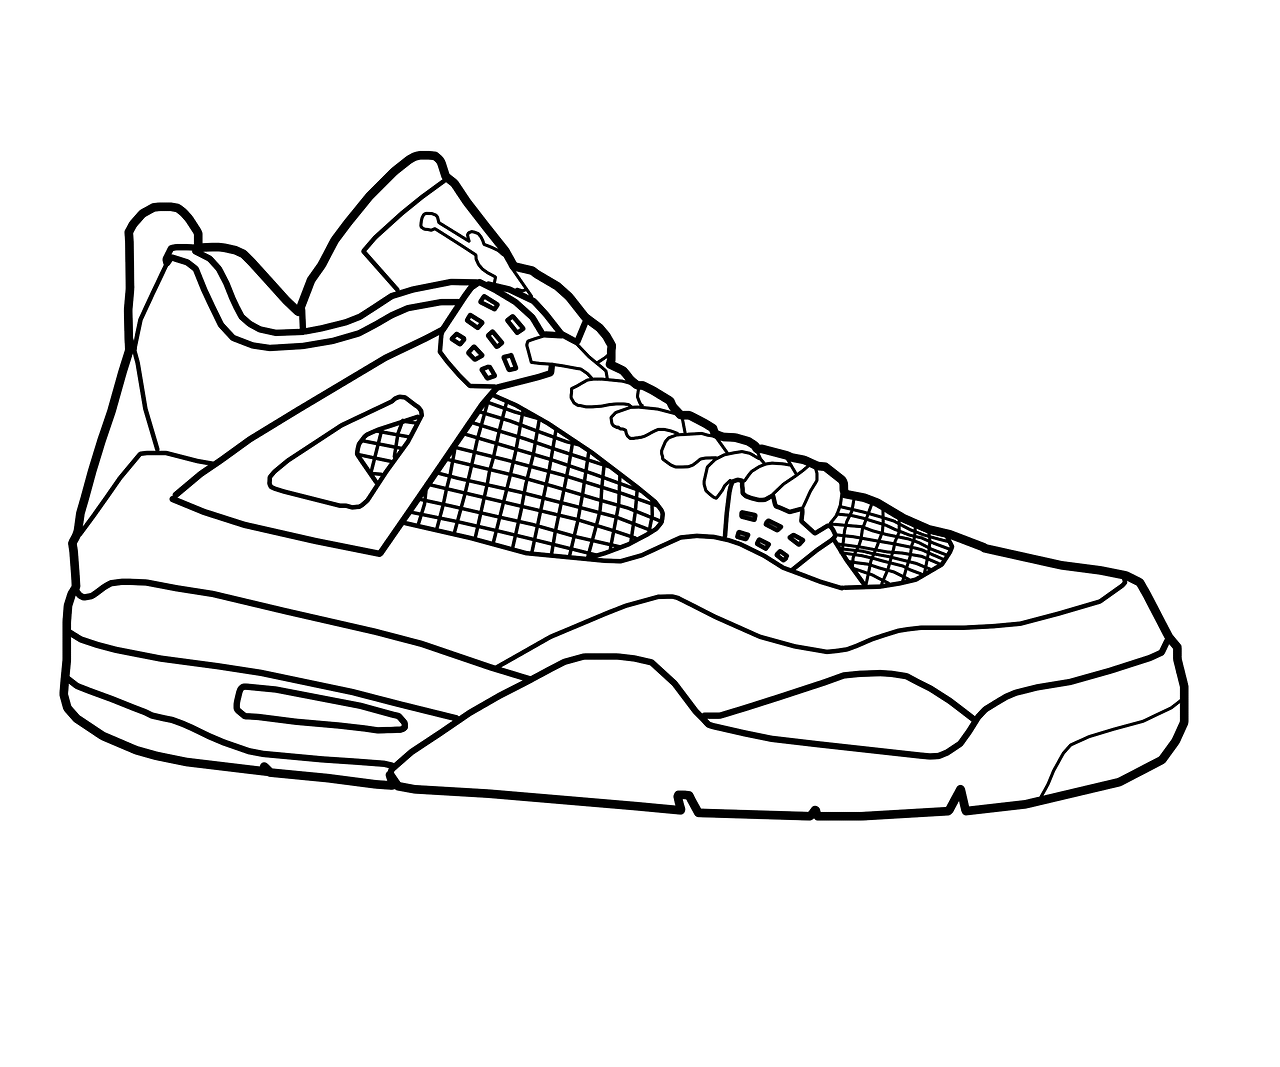 pictures of shoes to color basketball shoe coloring pages download and print for free pictures shoes color to of